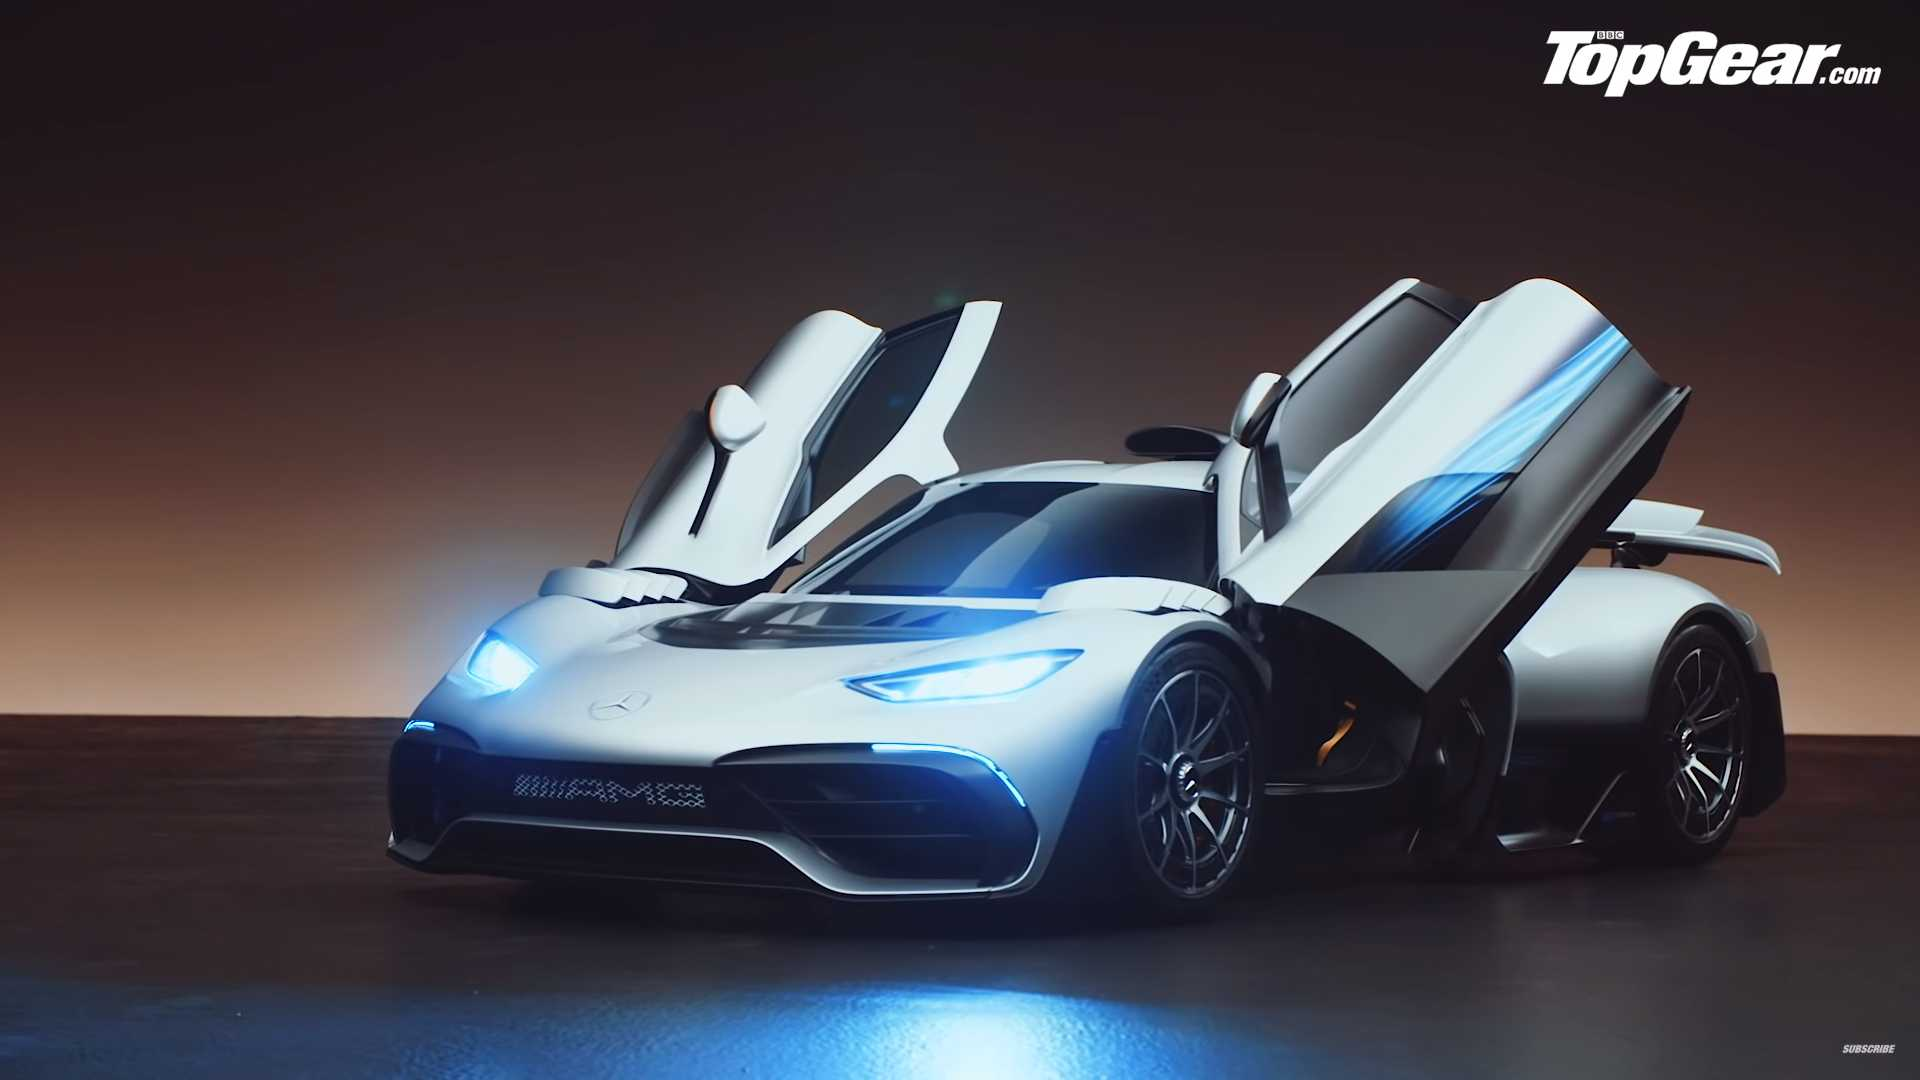 Mercedes Amg One Gets An Up Close Inspection From Top Gear